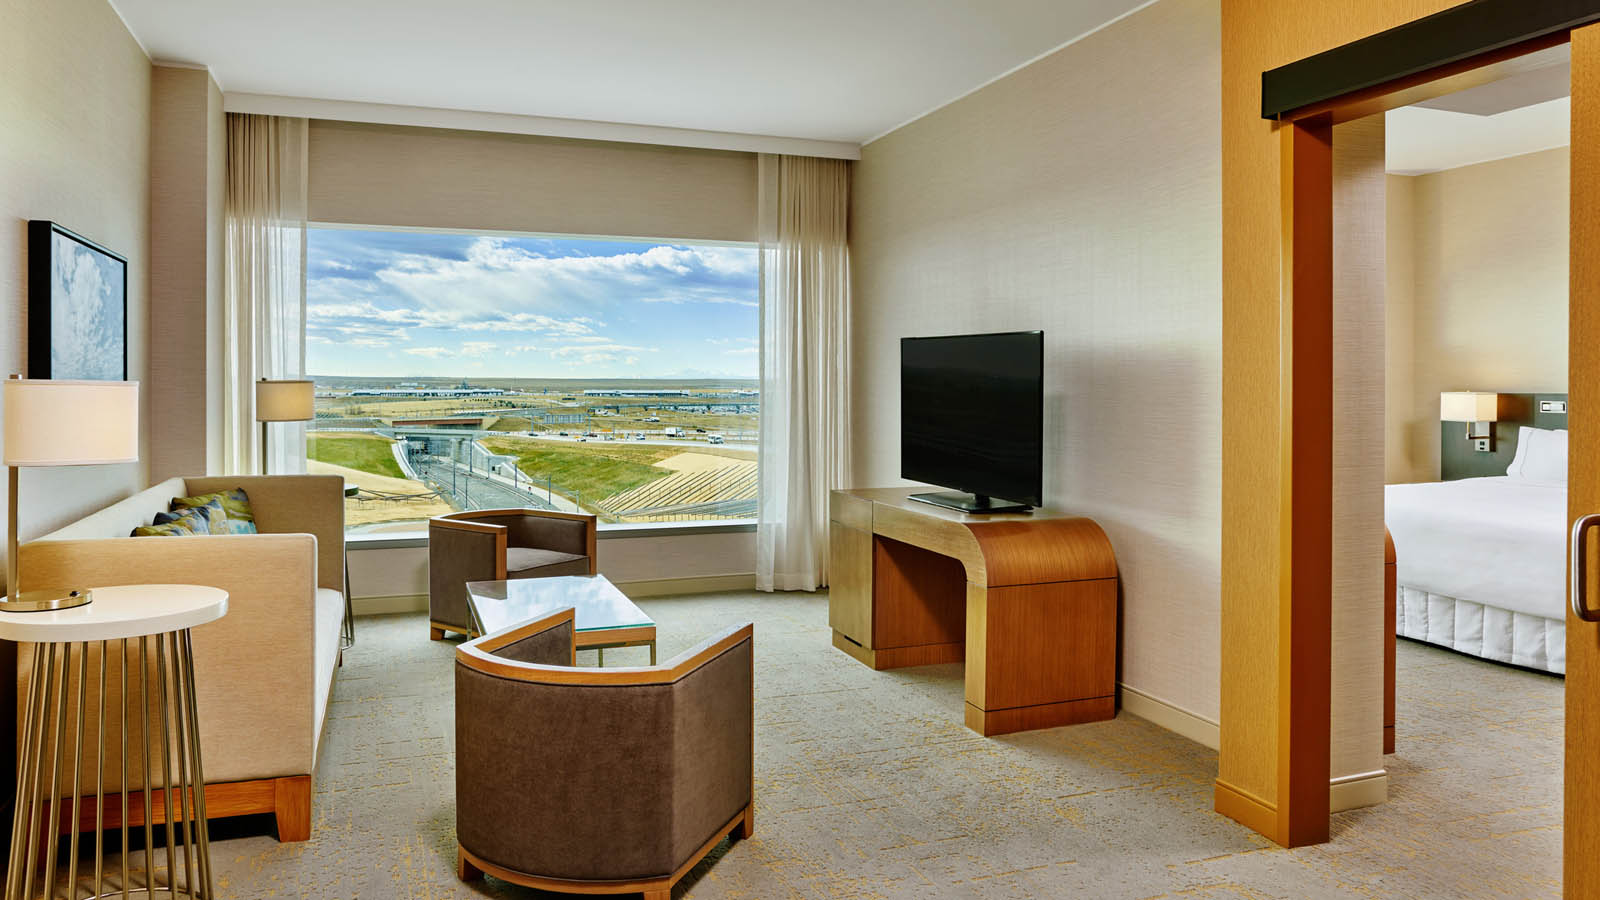 Denver Airport Lodging - Executive Suite - The Westin Denver International Airport